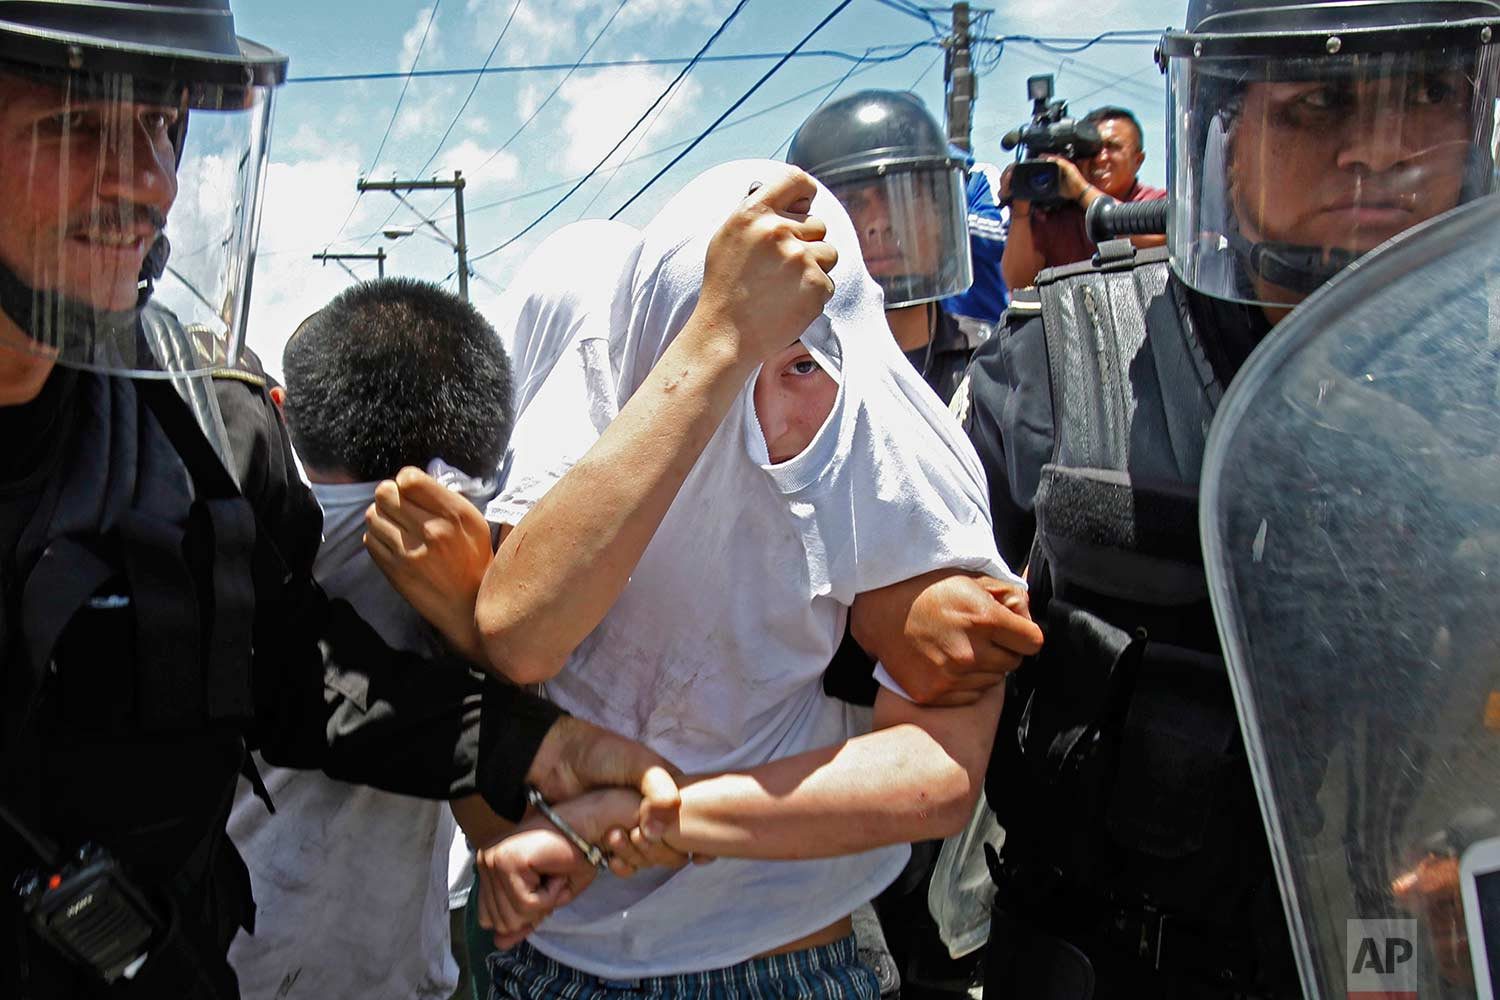 National Civil Police Special Forces escort recaptured inmates from the Juvenile Correctional Center Gaviotas in Guatemala City, Monday, July 24, 2017. (AP Photo/Moises Castillo)